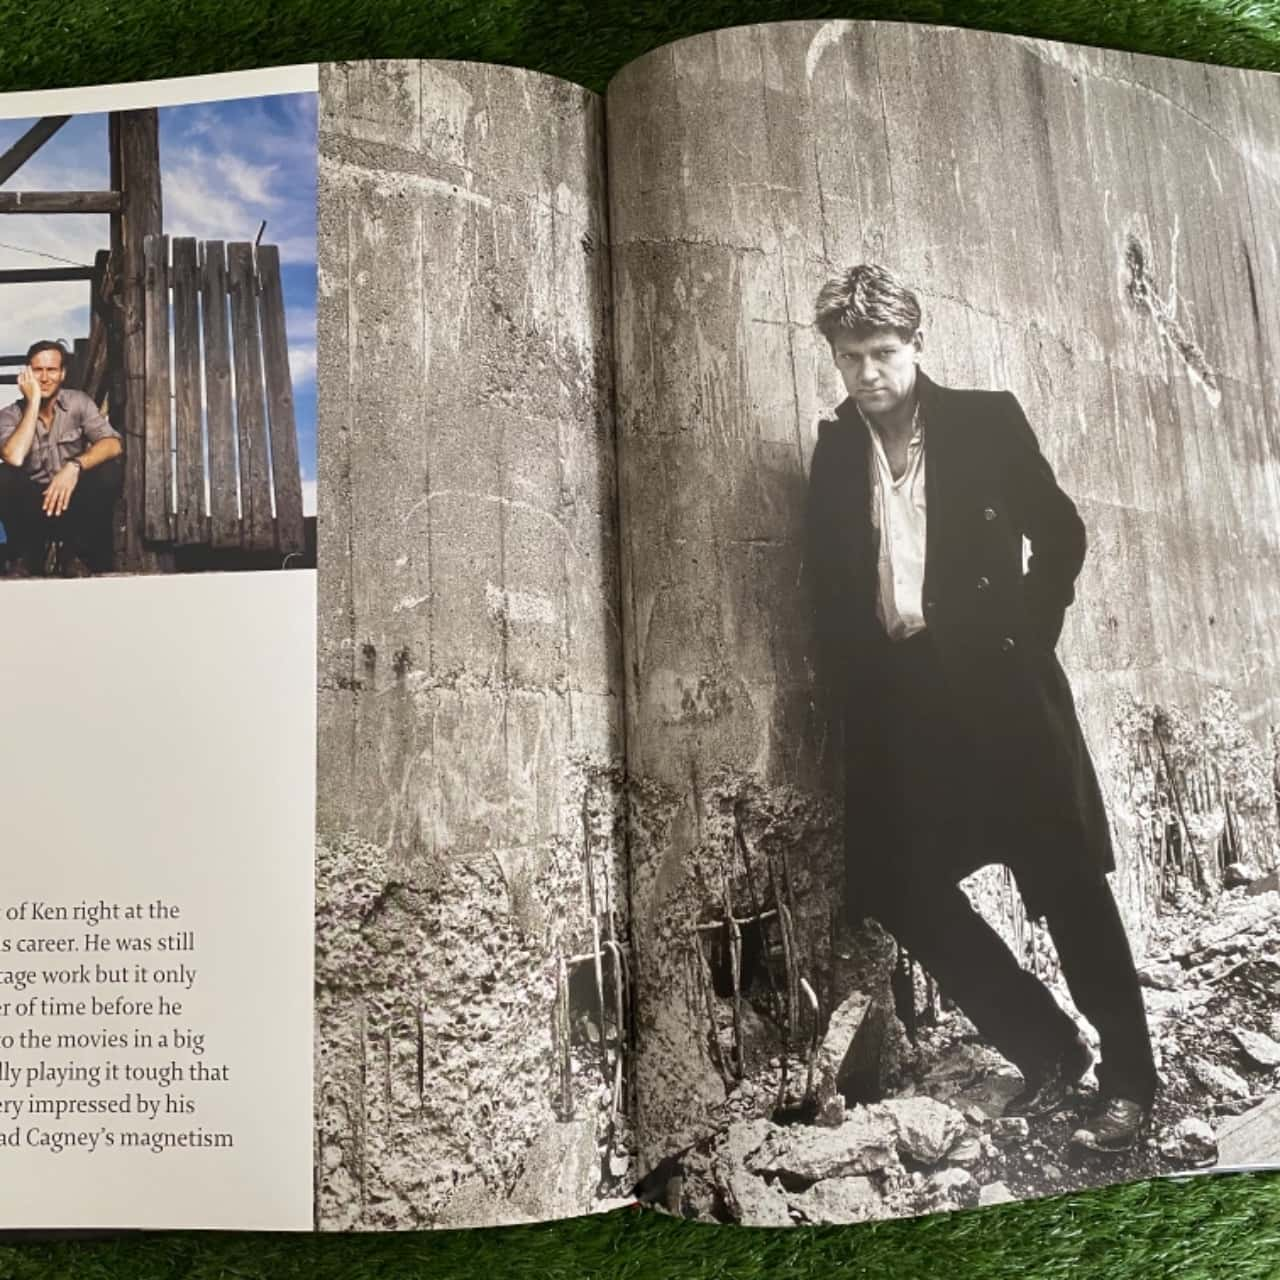 Celebrity: The Photographs of Terry O'Neill